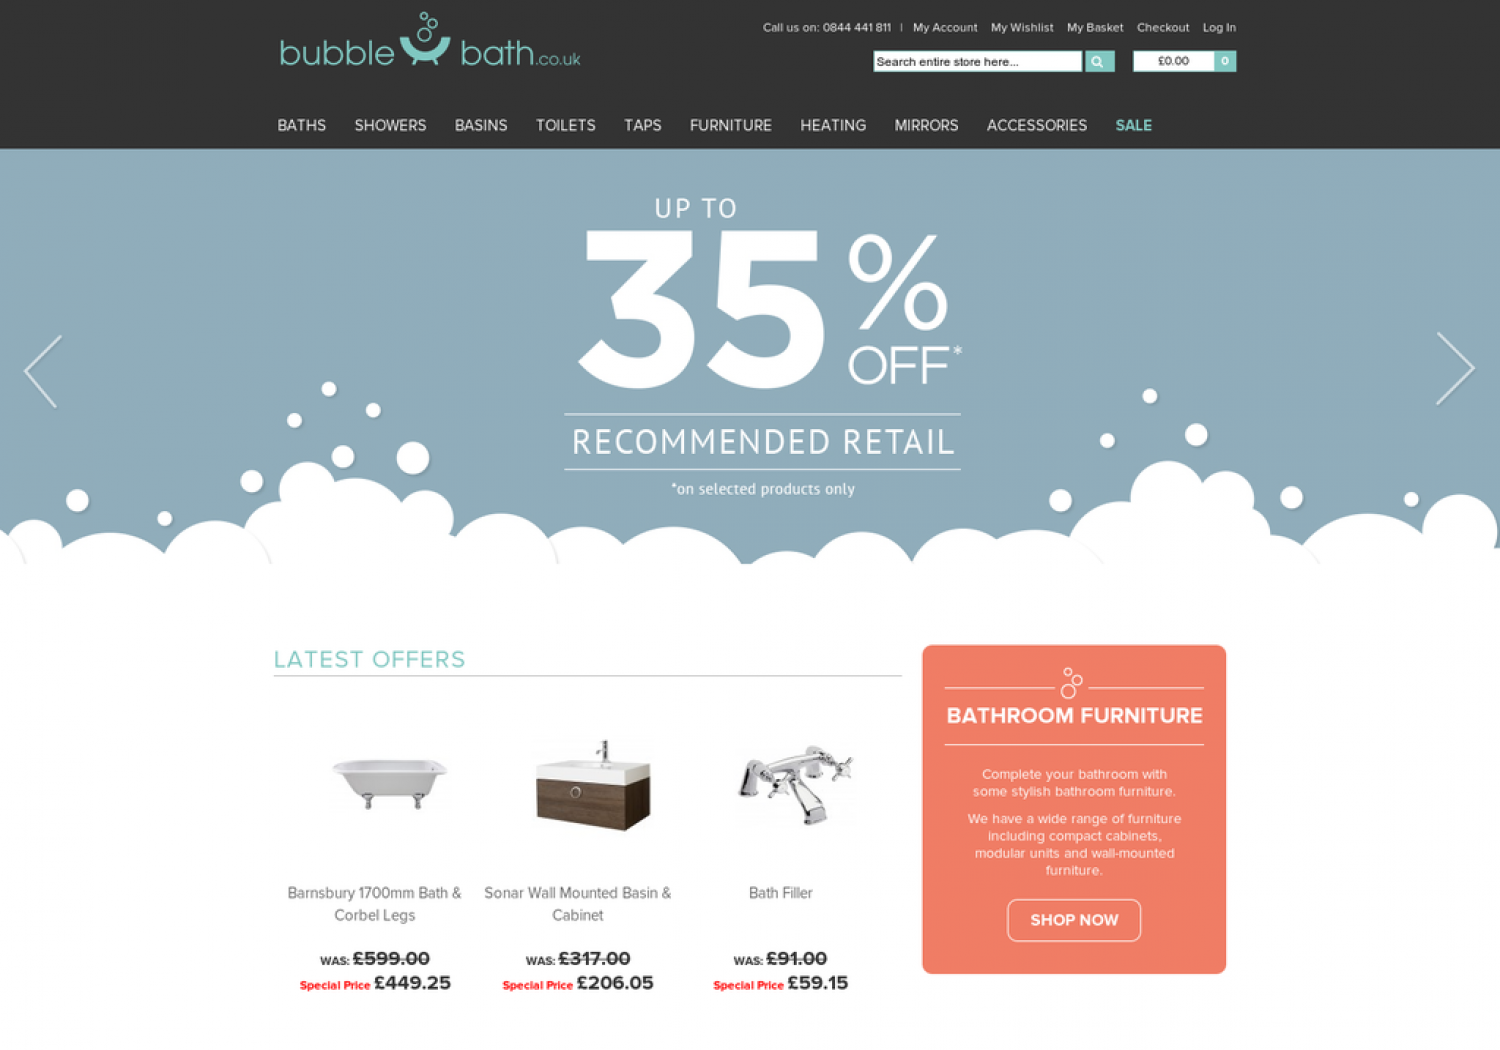 Online Bathroom Store - Bubble Bath | Visual.ly